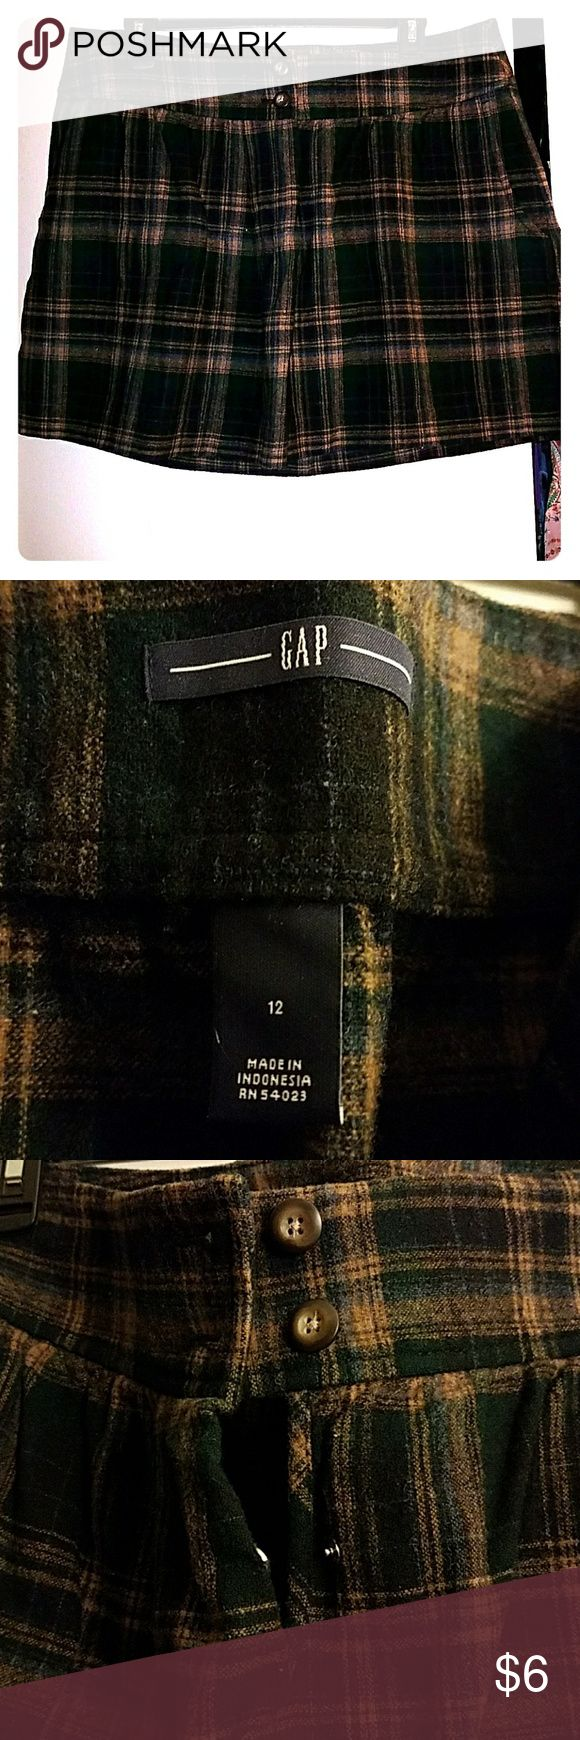 Gap Size 12 Plaid Wool Skirt with Pockets Gap Size 12 Plaid Wool Skirt, no inner lining, pockets, no zipper, button front. Only worn a few times, like new, Green/dark blue/black/tan/orange are the colors of the plaid. Im 5'4, skirt is a few inches above knee GAP Skirts